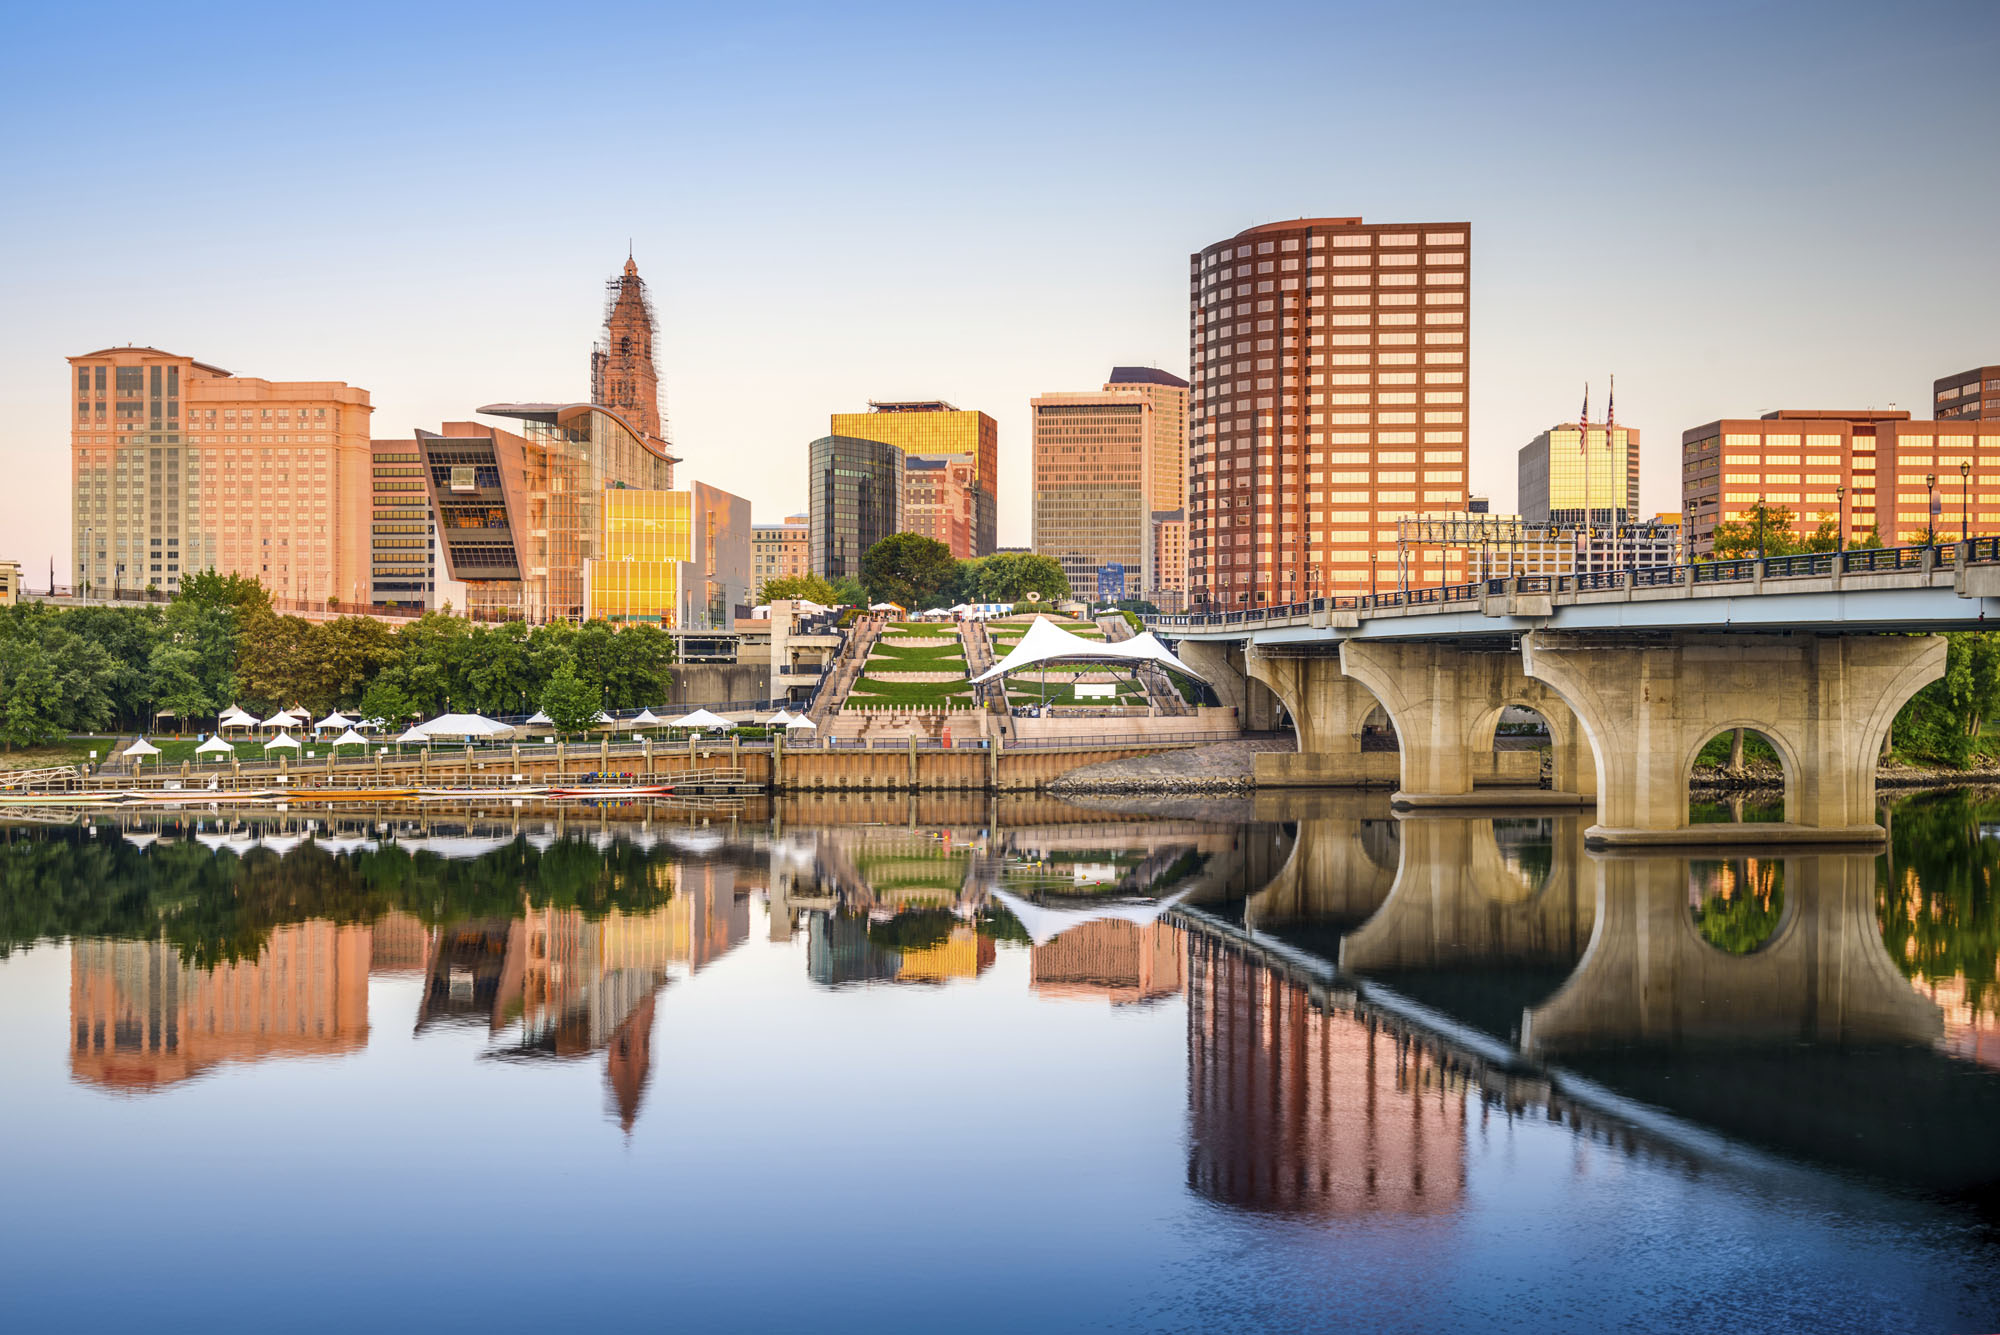 Hartford skyline and Connecticut River. Photo credit: Sean Pavone / iStock